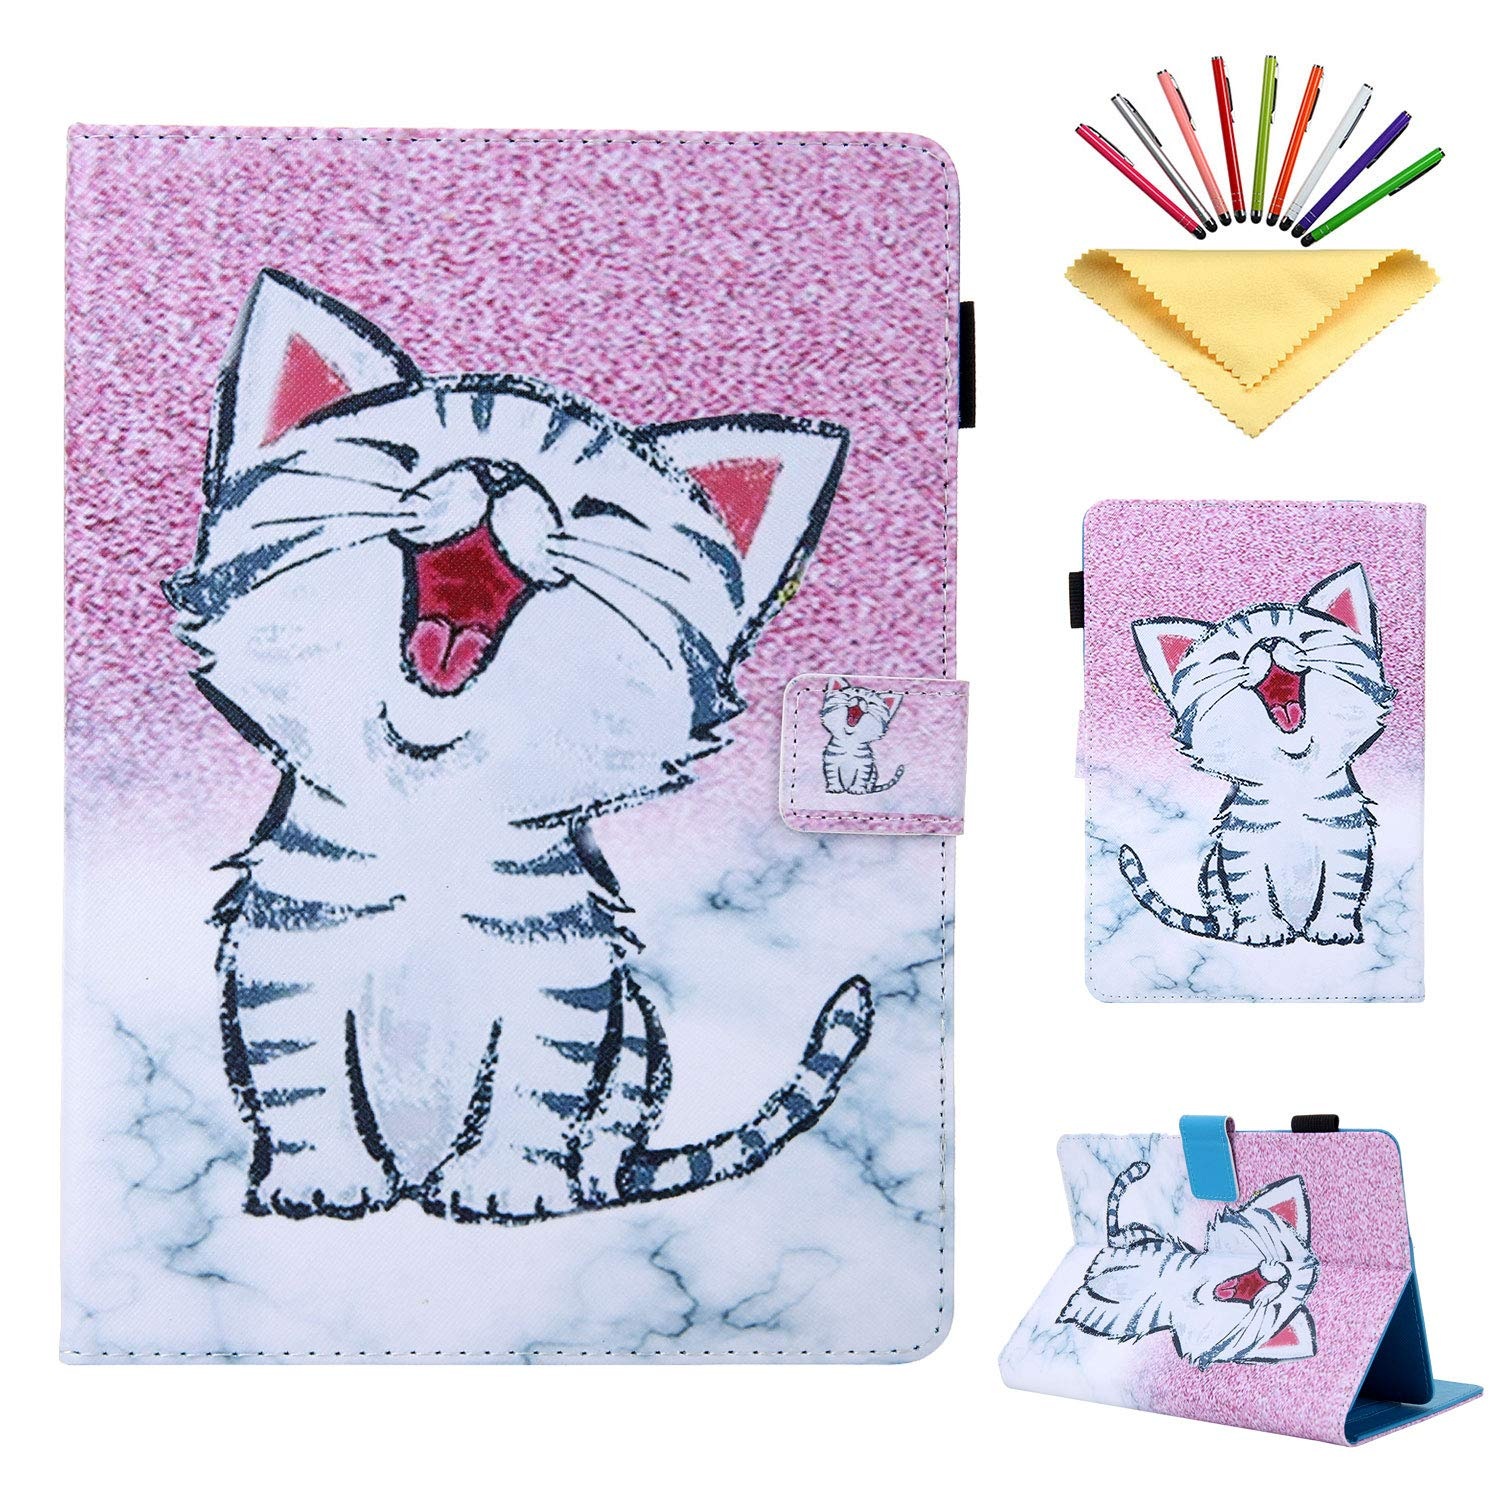 """8"""" Tablet Universal Case, Uliking 7.5-8.5 inch Tablets Pencil Cover for Lenovo/HP/LG/Asus/MediaPad for Samsung Galaxy Tab A 8.0/Tab E/4/S2 8.0, for Apple iPad Mini 5/4/3/2/1 7.9 inch, Pink Cat Marble"""